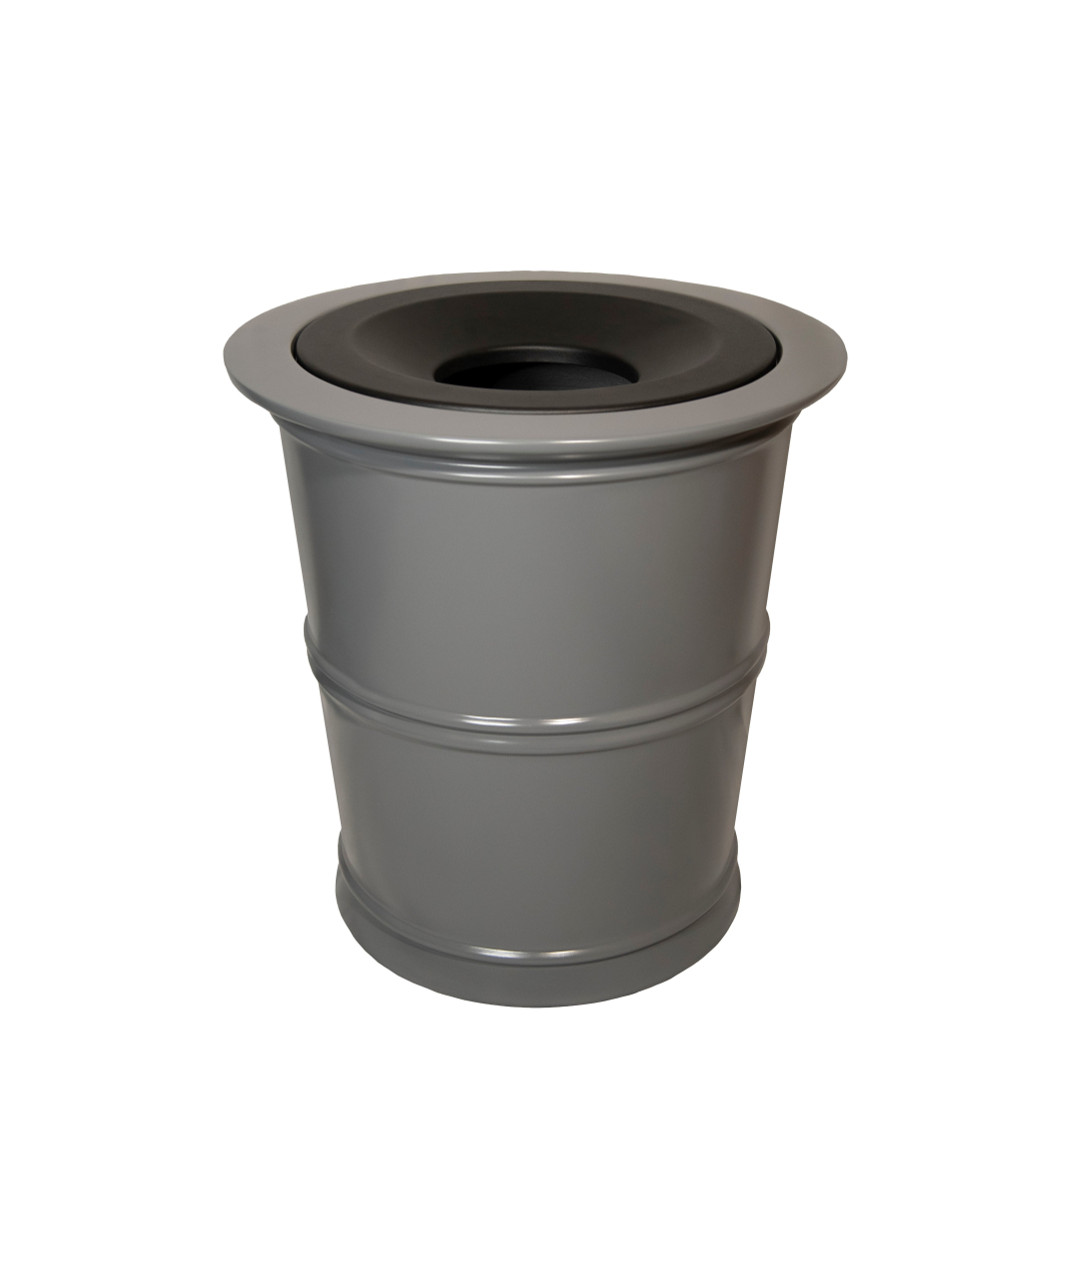 32 Gallon Fiberglass BRADFORD Decorative Trash Receptacle